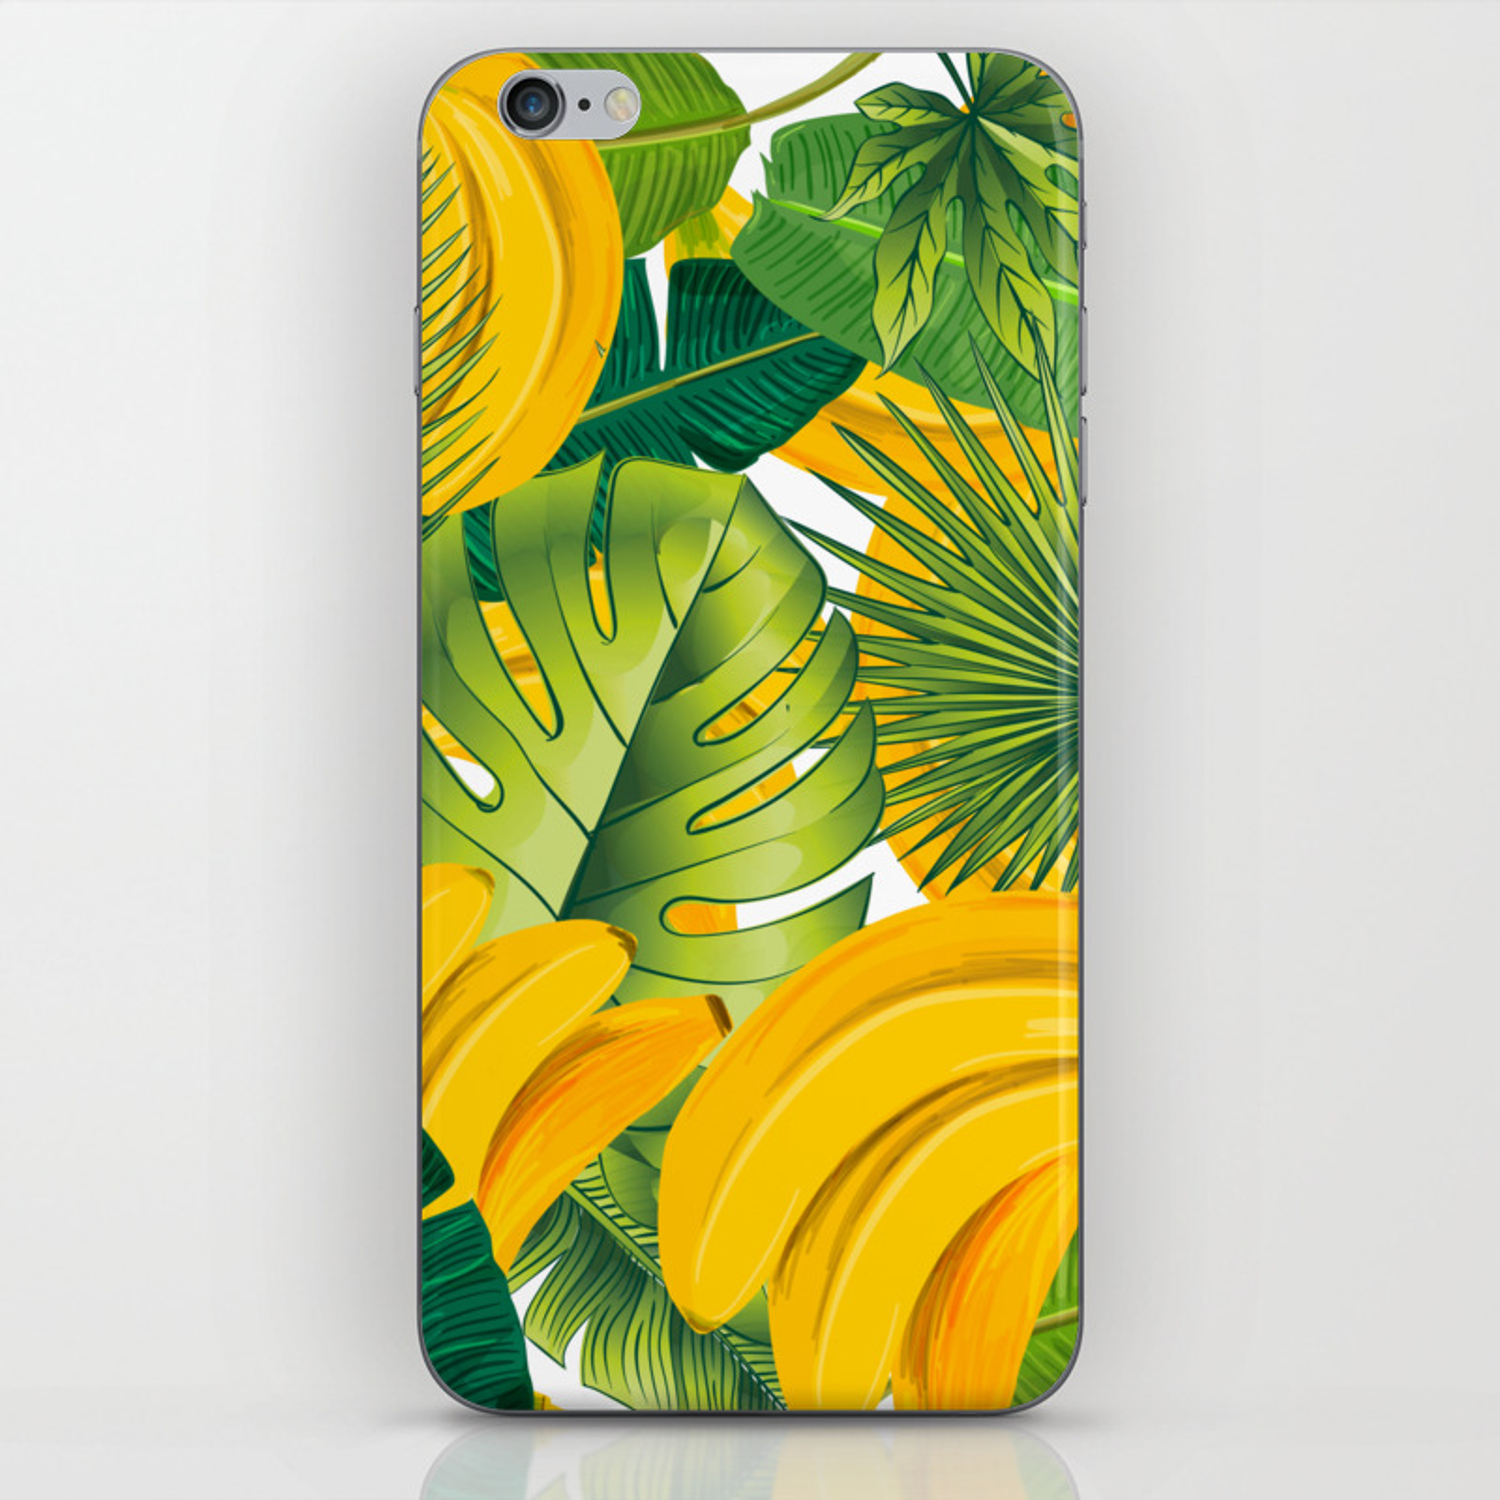 Tropical Leaves Decor Bananas Print Forest Interior Palm Iphone Skin By Lubo Society6 Tropical forests are forested landscapes in tropical regions: society6